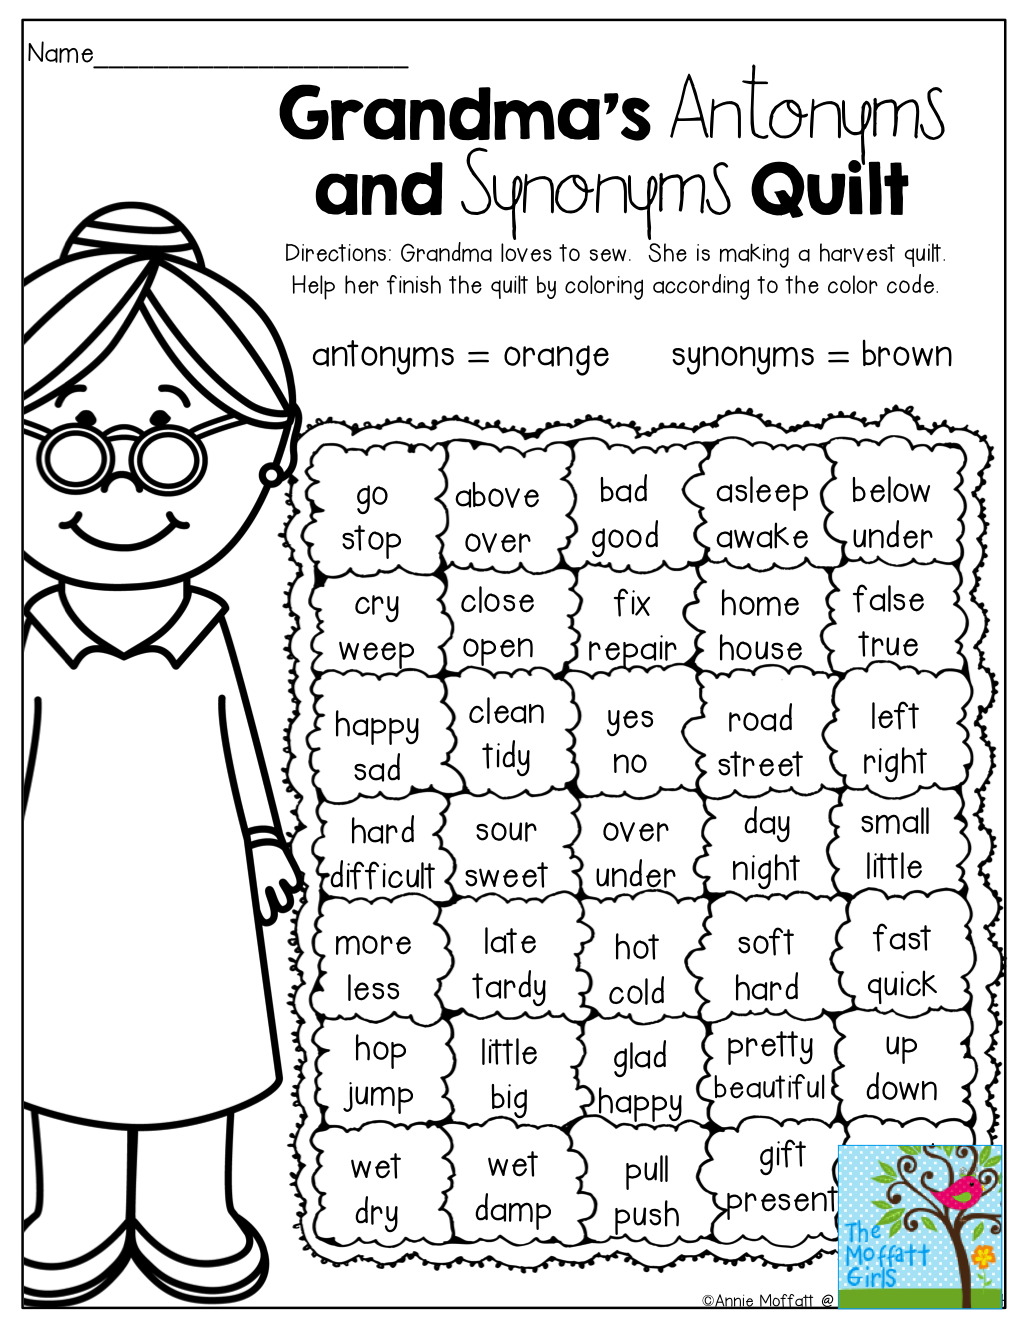 worksheet Antonym And Synonym Worksheets a fun way to review antonyms and synonyms education pinterest synonyms